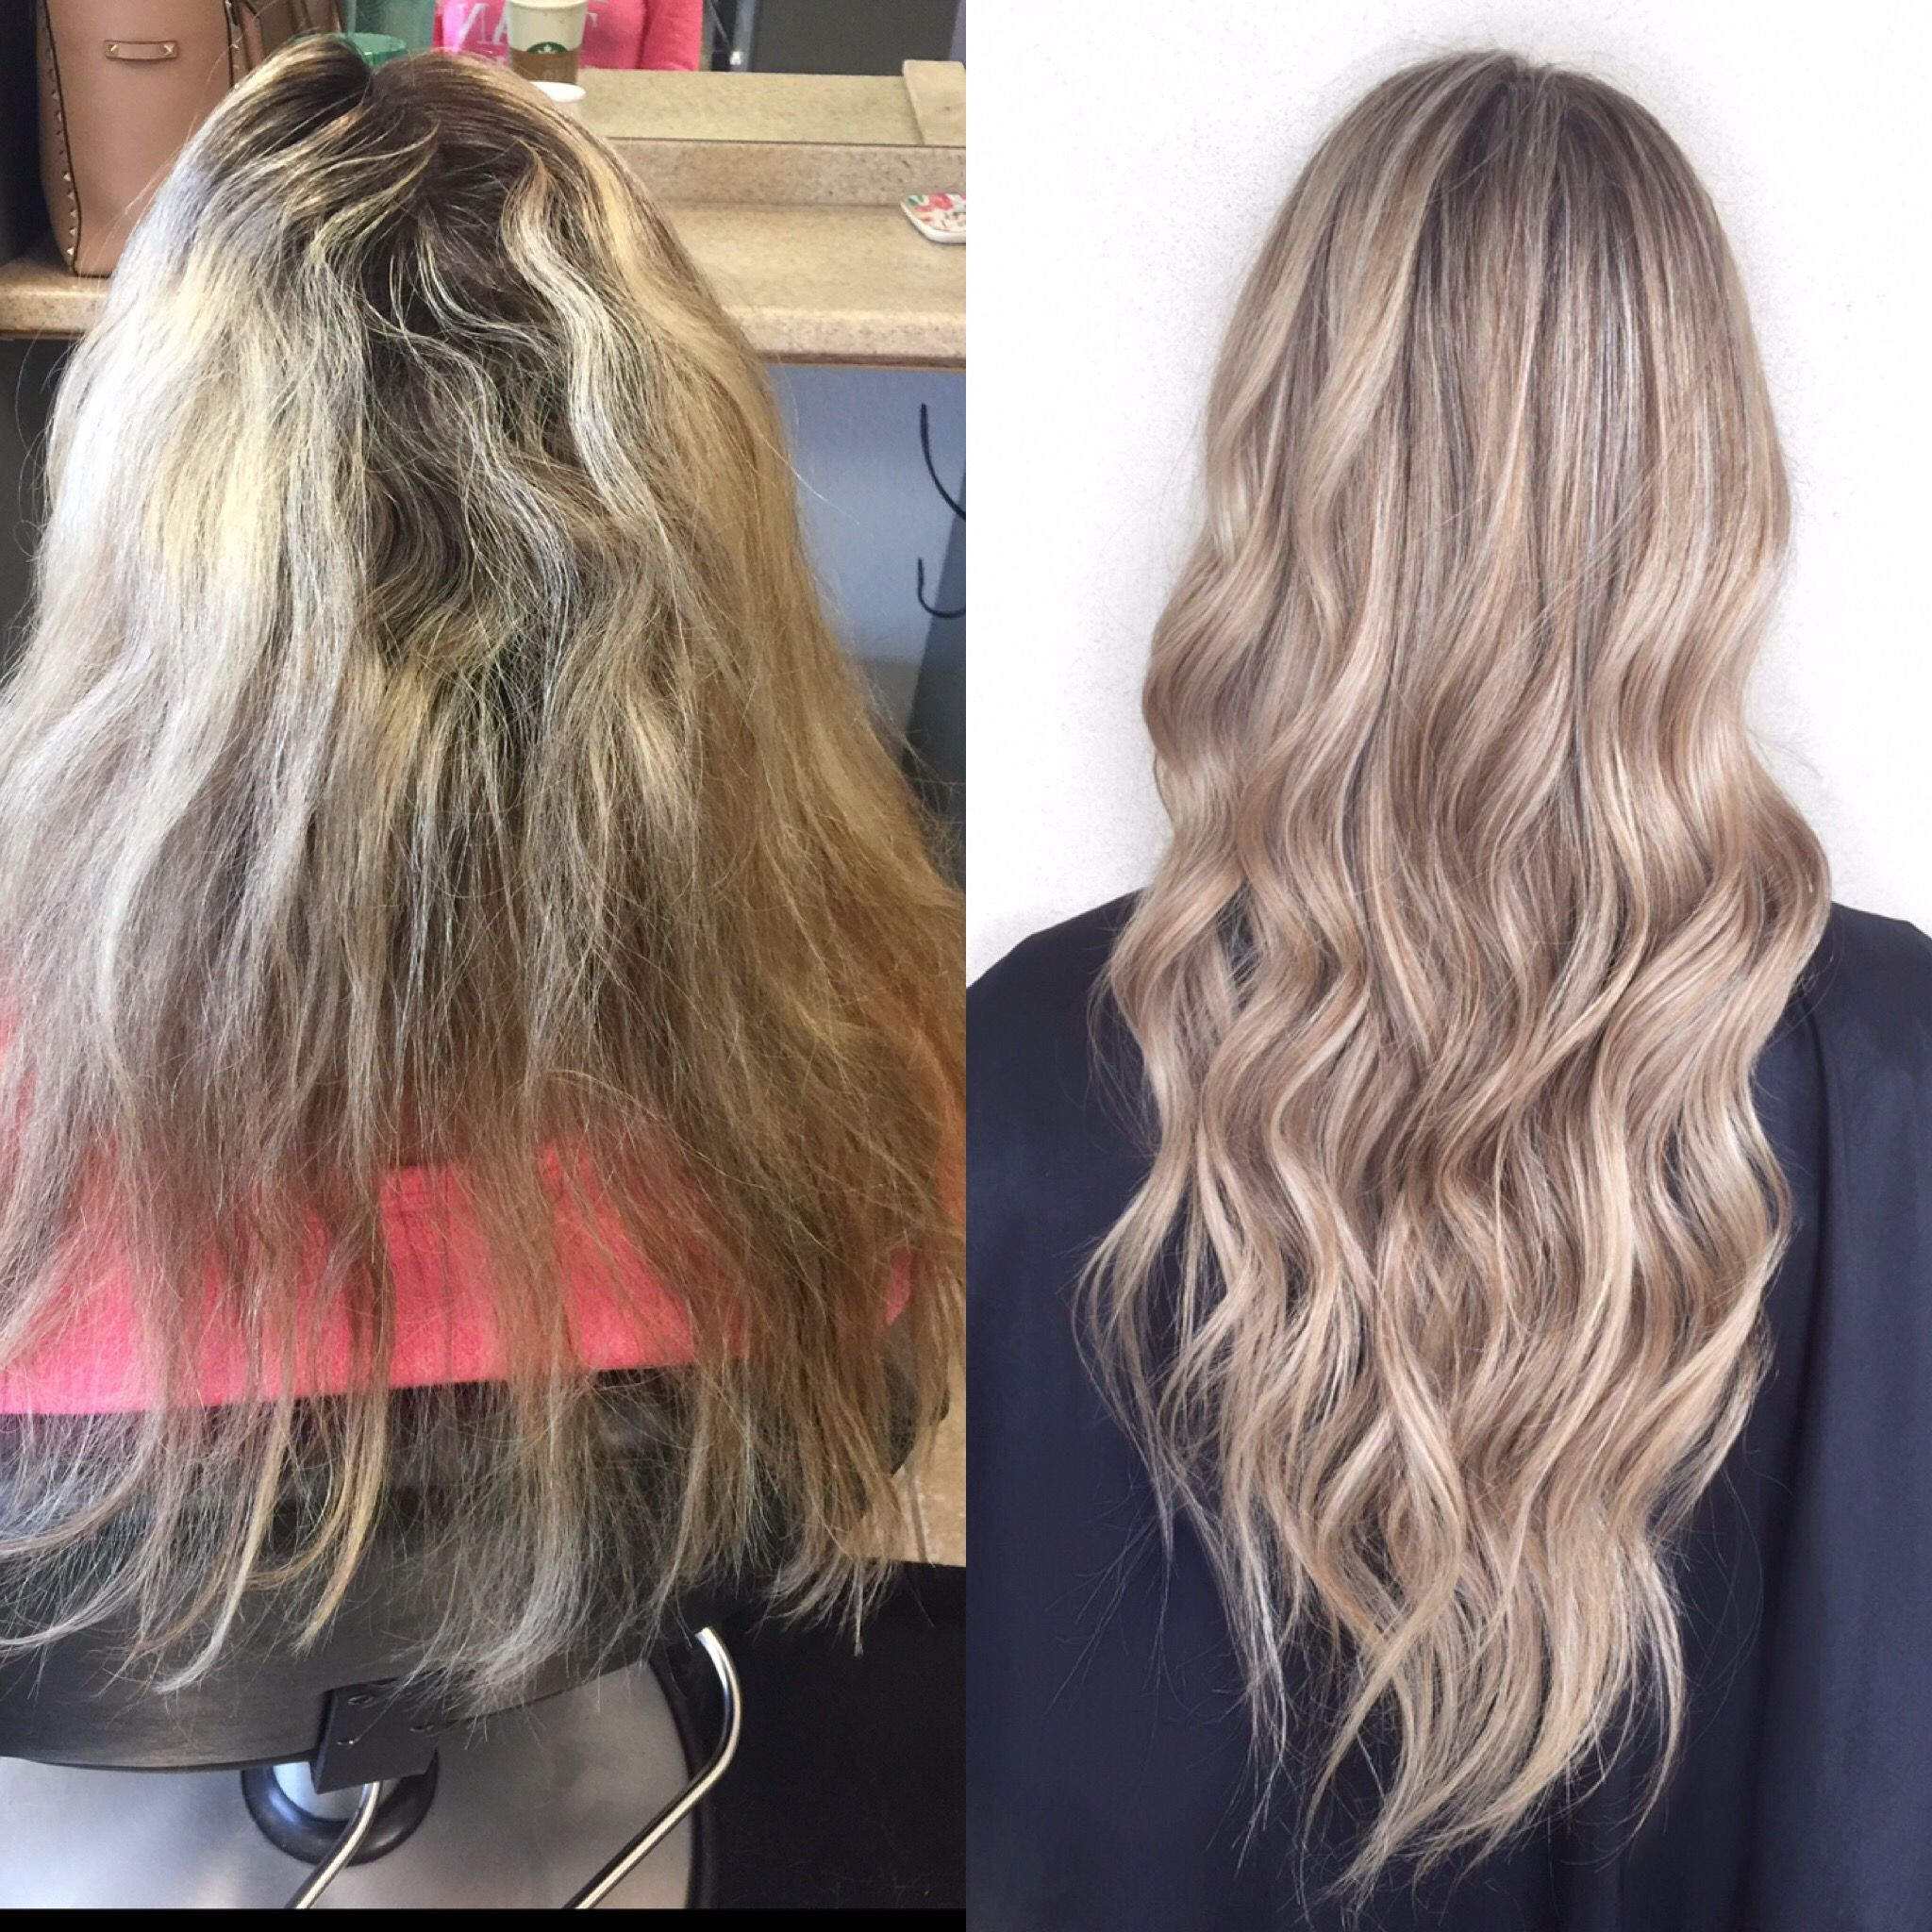 Before And After With Brixtco Extensions 2 Rows Of Hand Tied Hair